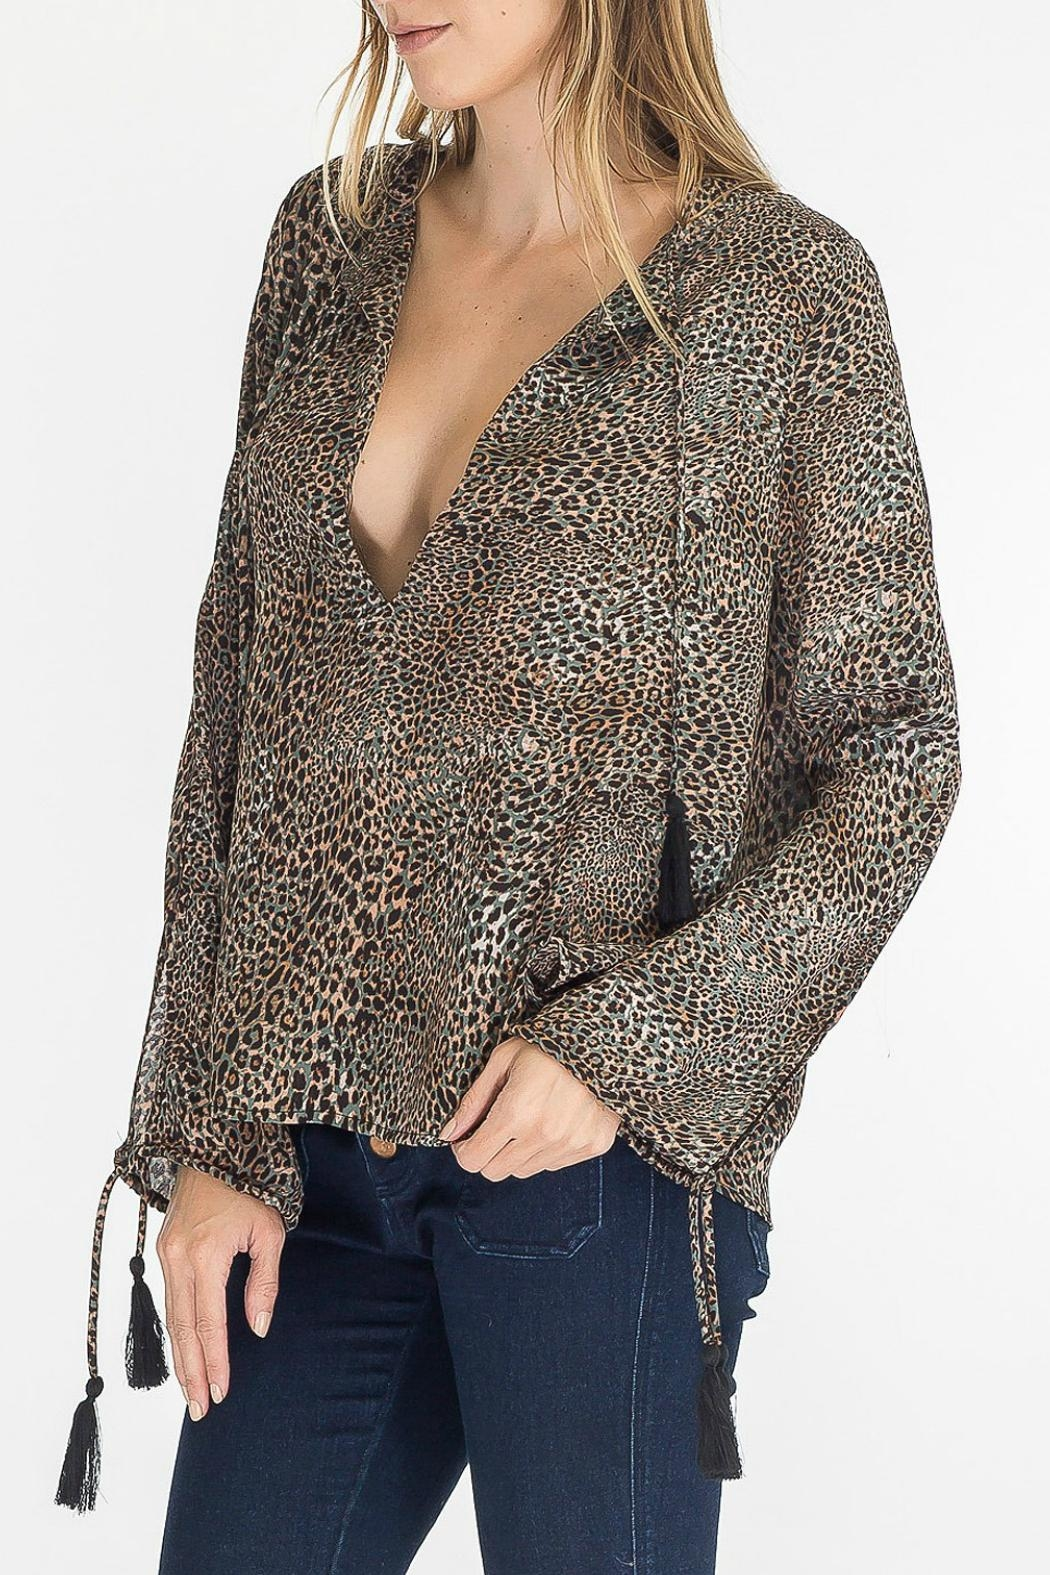 Olivaceous Leopard Keyhole Top - Front Full Image